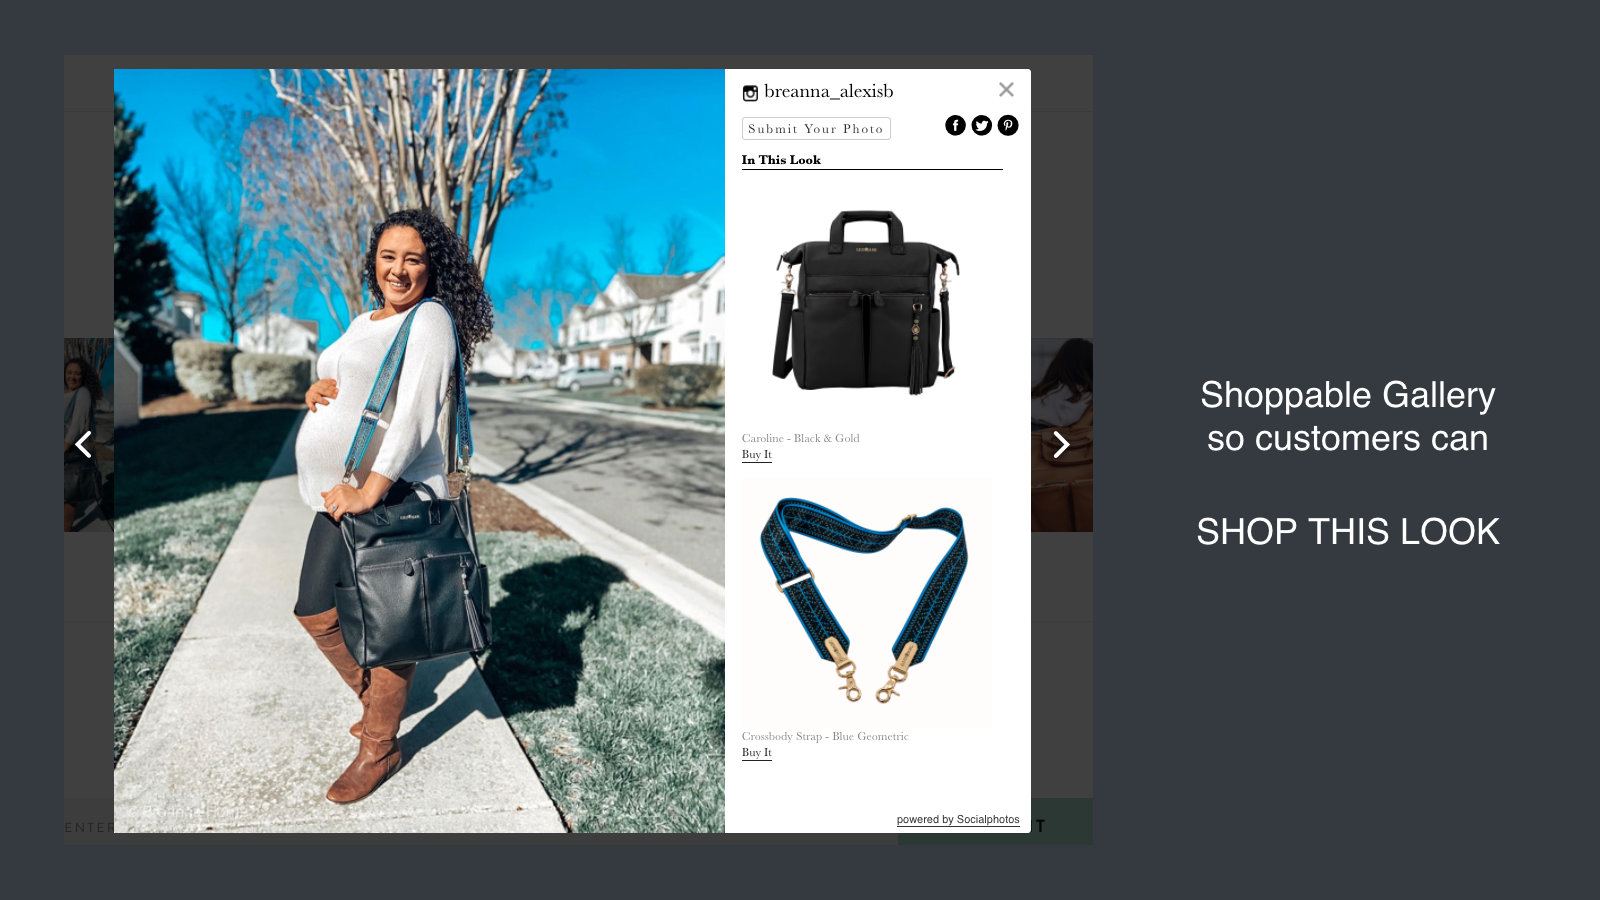 Shoppable gallery so customers can SHOP THIS LOOK